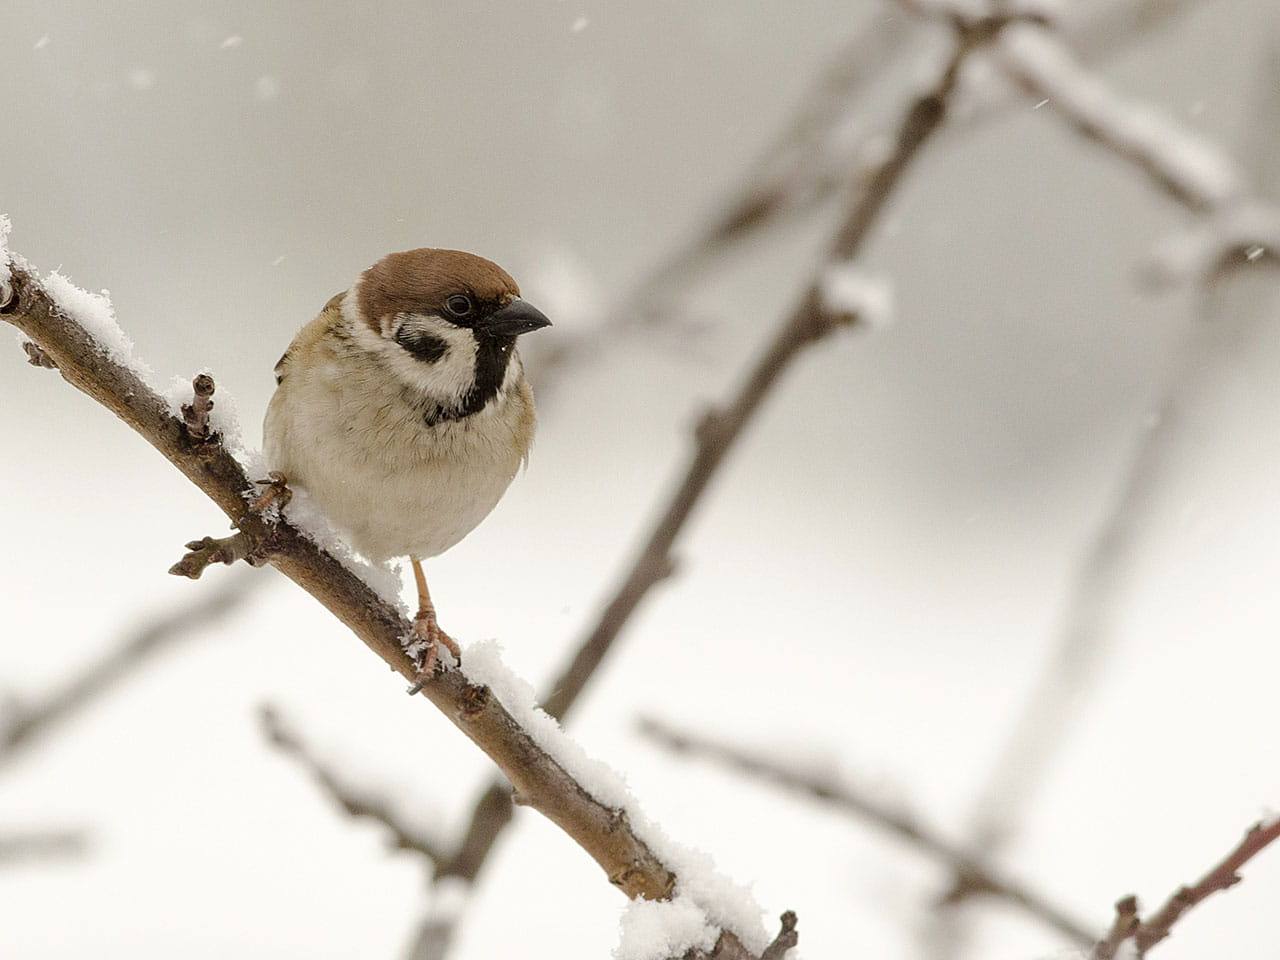 Sparrow sitting on a branc in winter snow